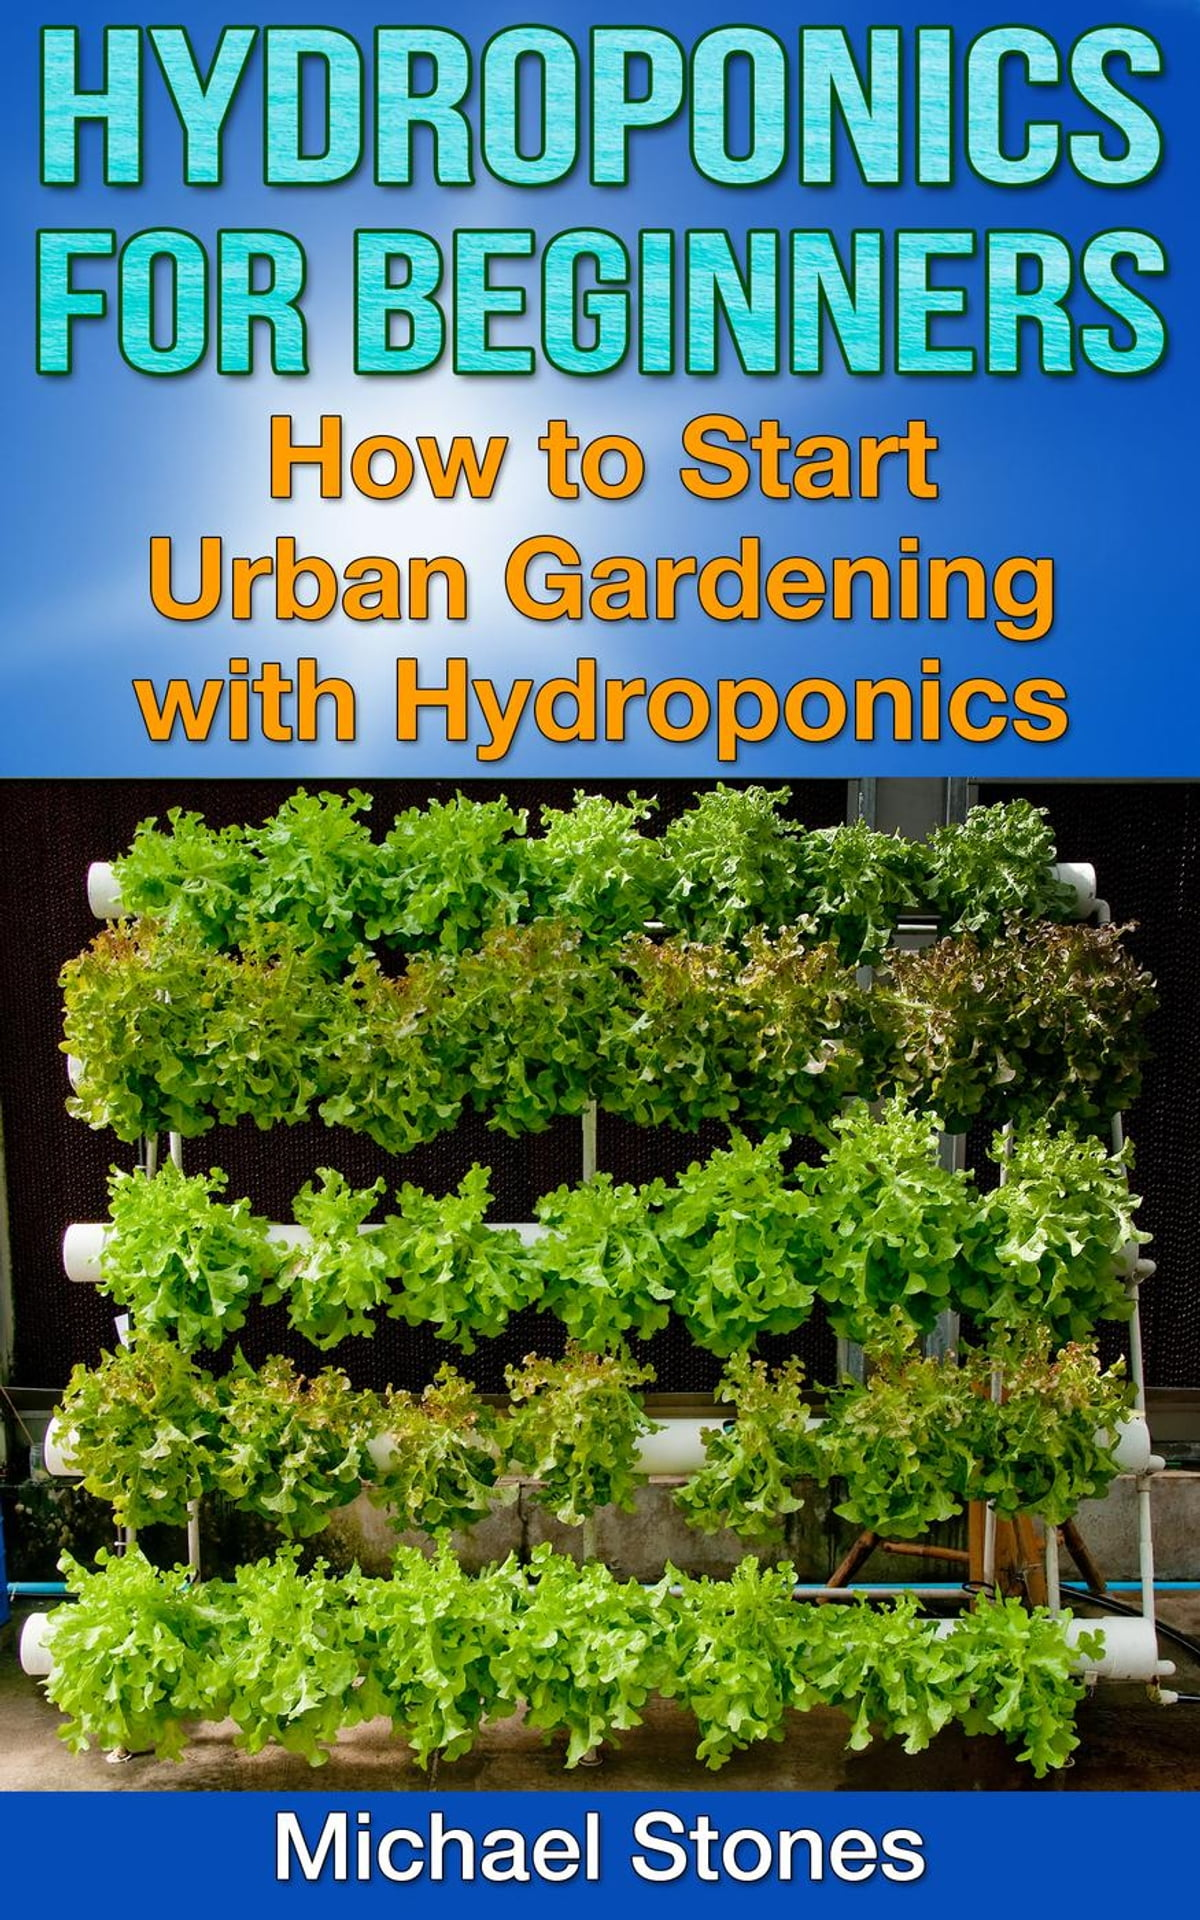 Hydroponics For Beginners How To Start Urban Gardening With